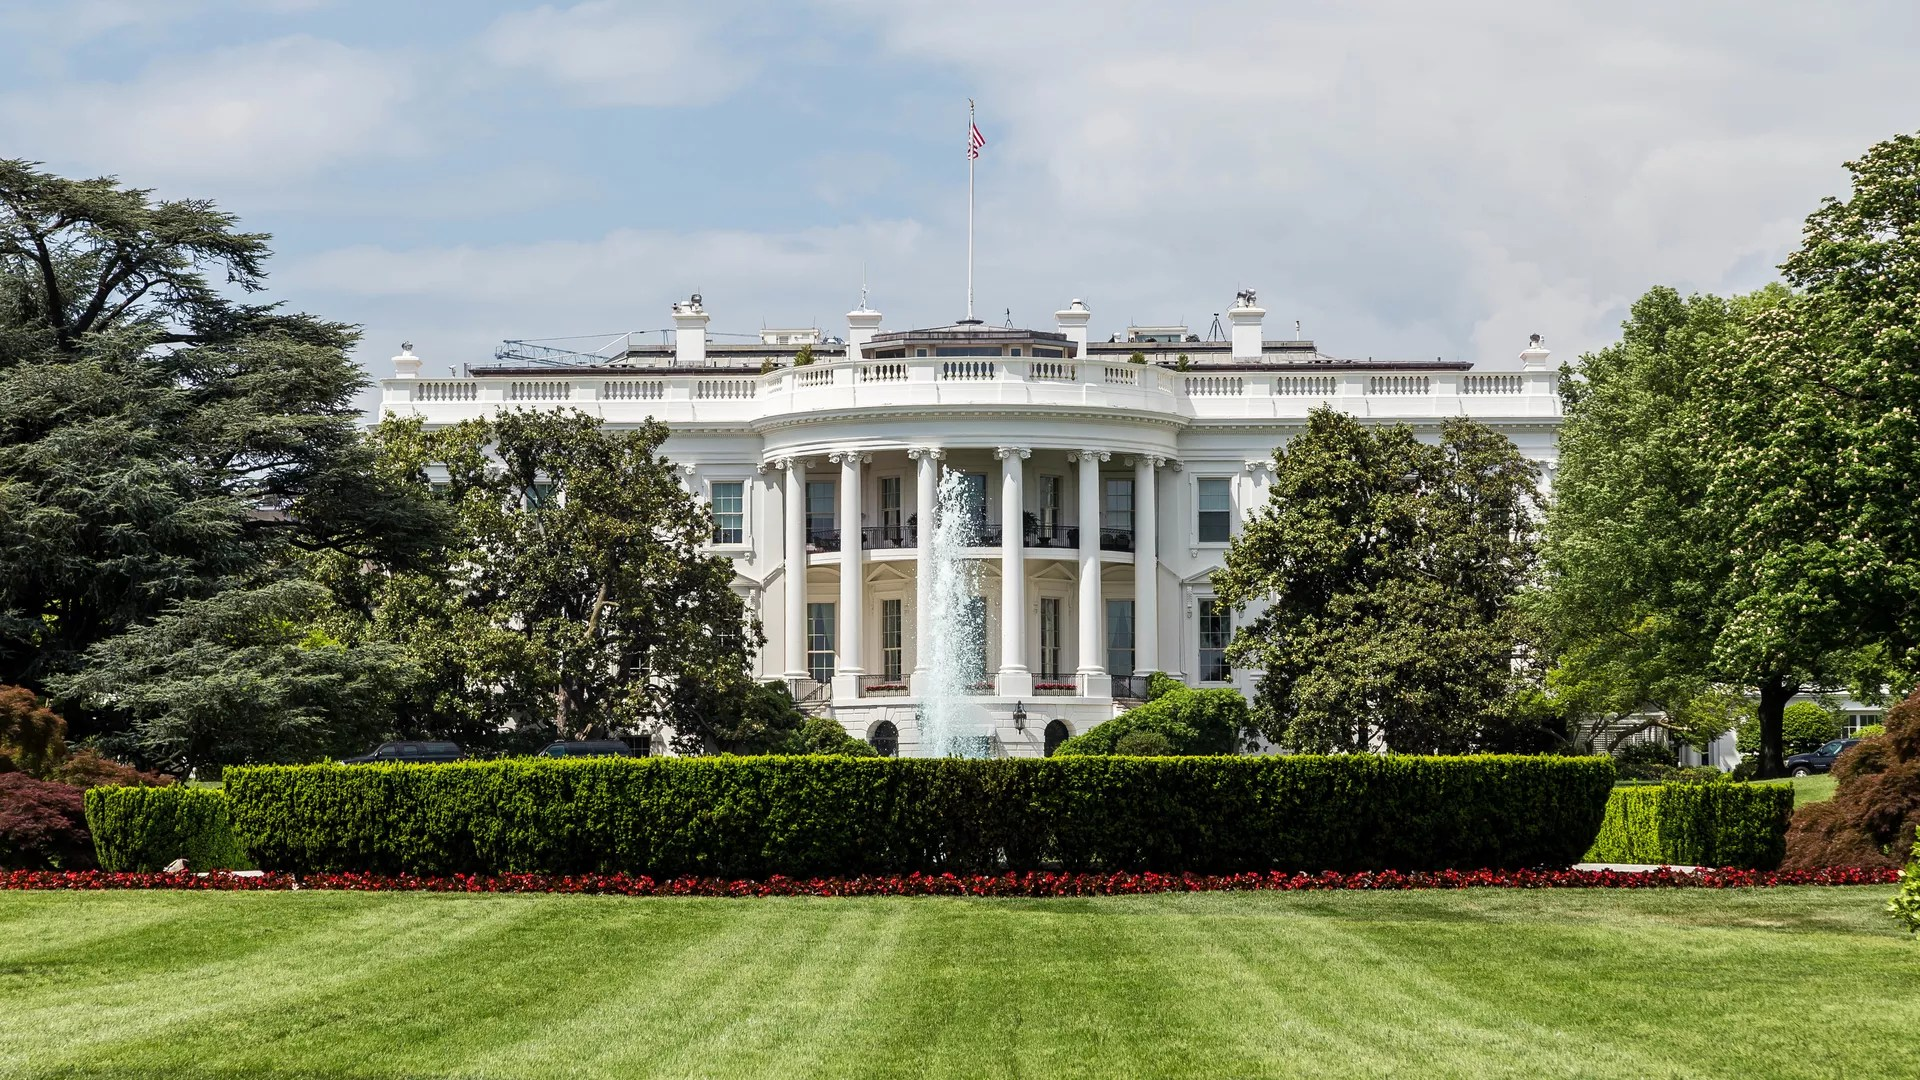 Man sets himself on fire in front of the White House  Axios